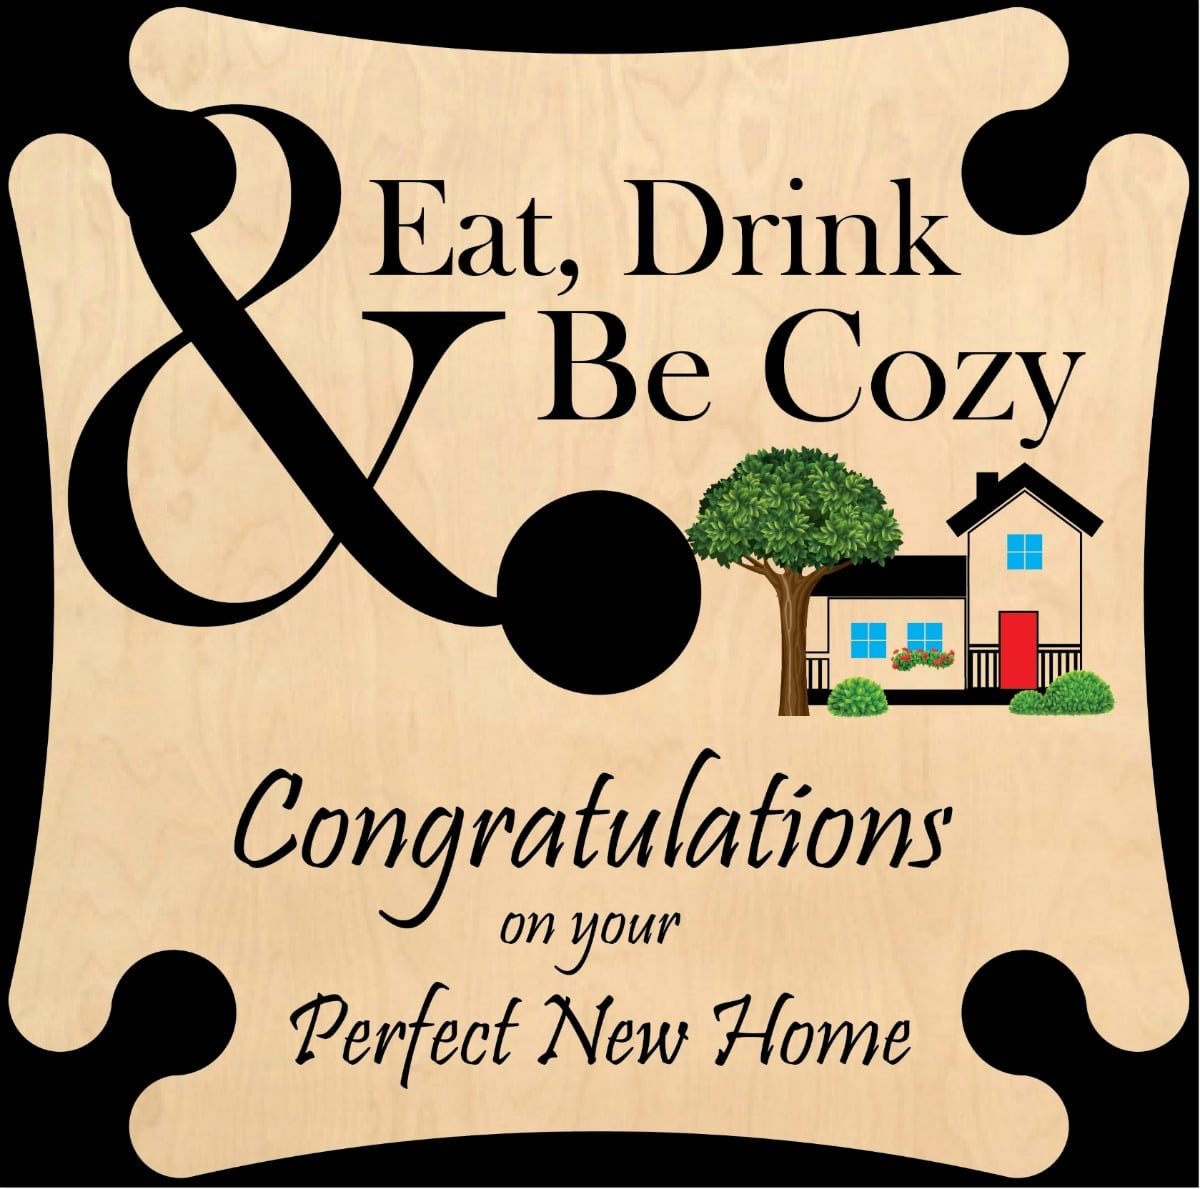 8 eat drink n be cozy congratulations-on-your-Perfect-New-Home.jpg